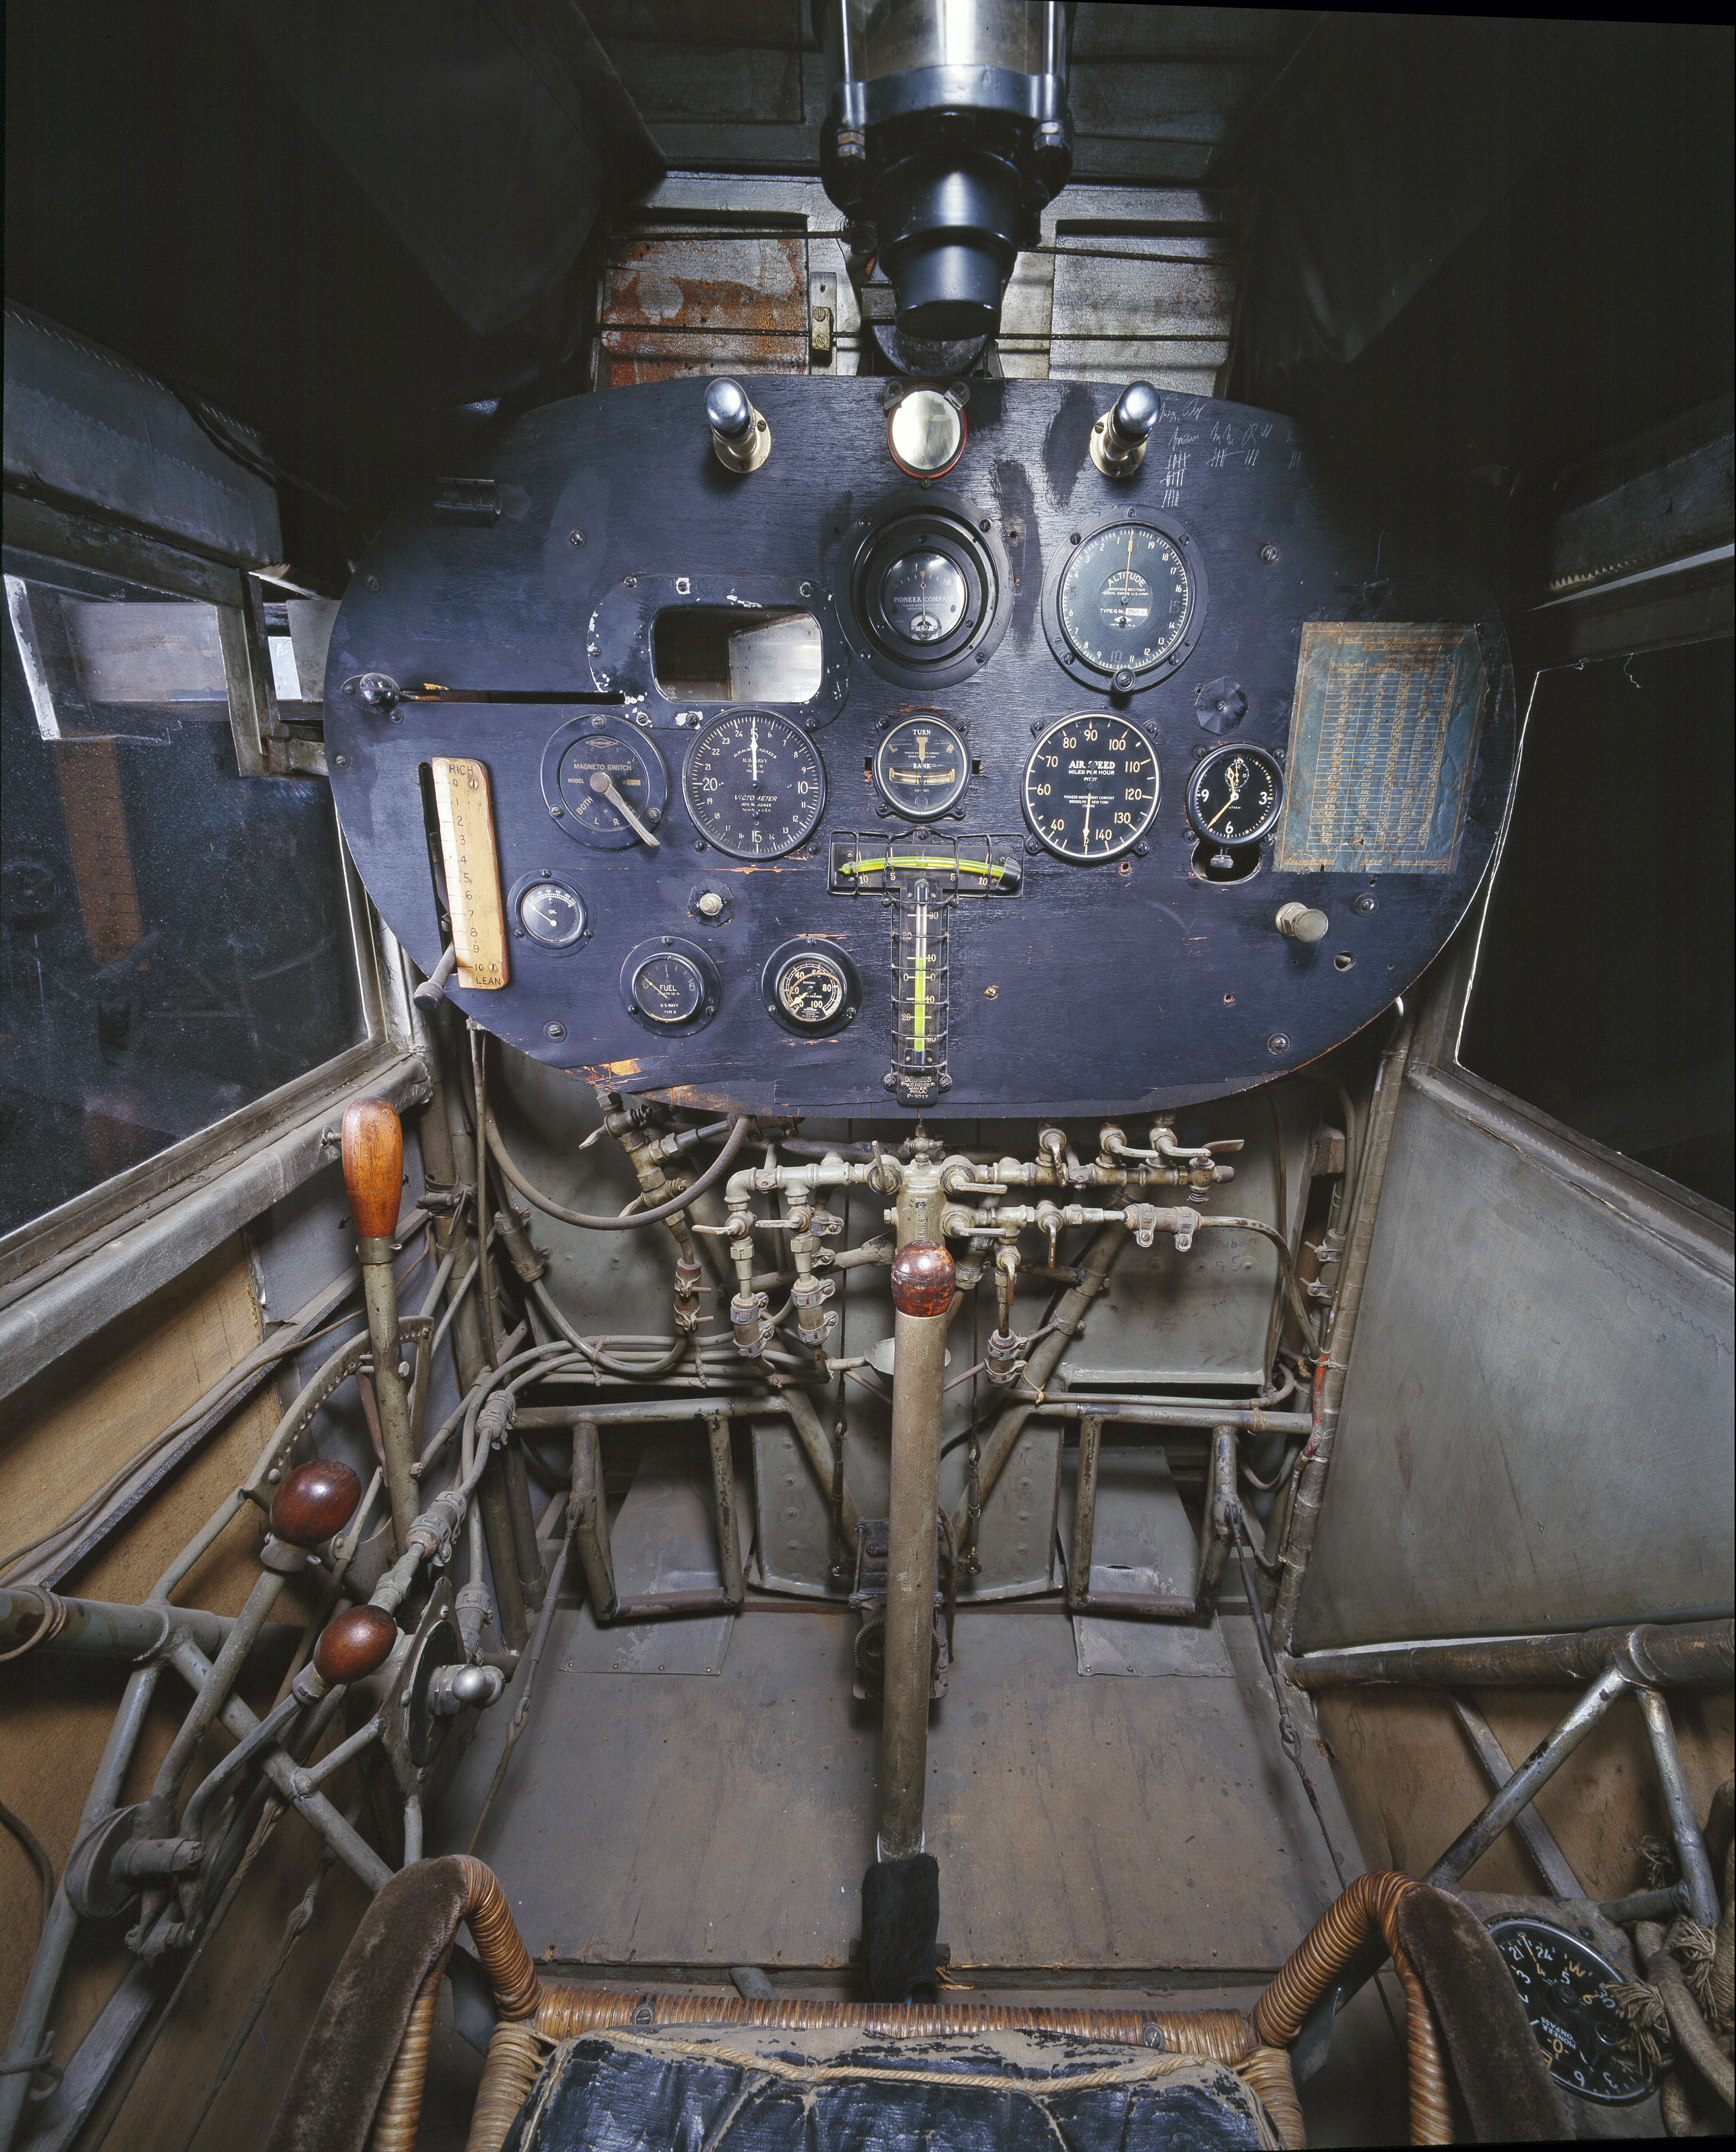 The cockpit of the Spirit of St. Louis